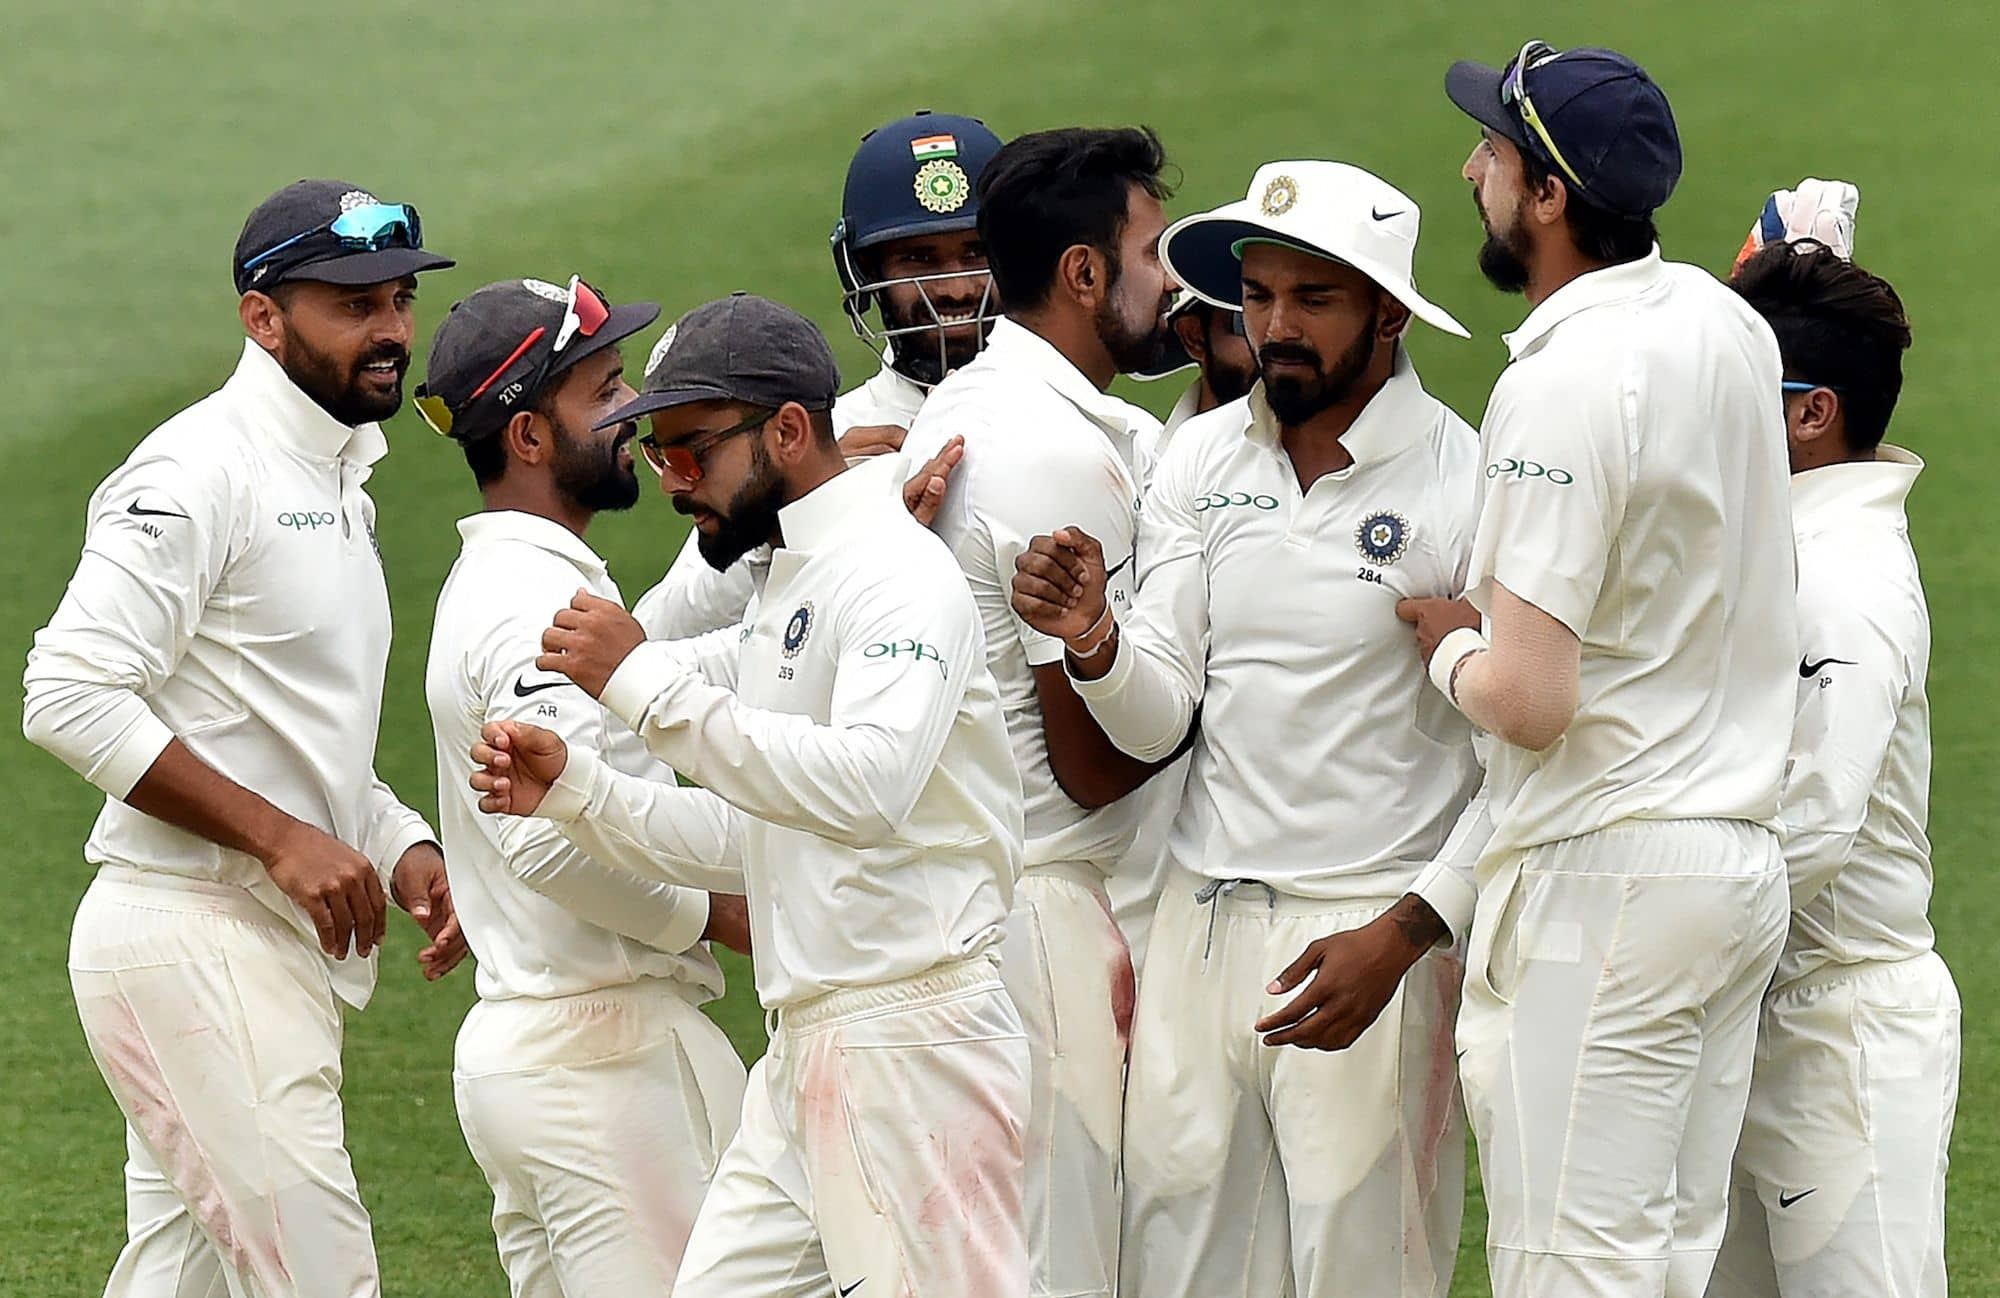 India vs Australia 2018, 1st Test: MATCH HOME – Live scores, updates, reports, videos